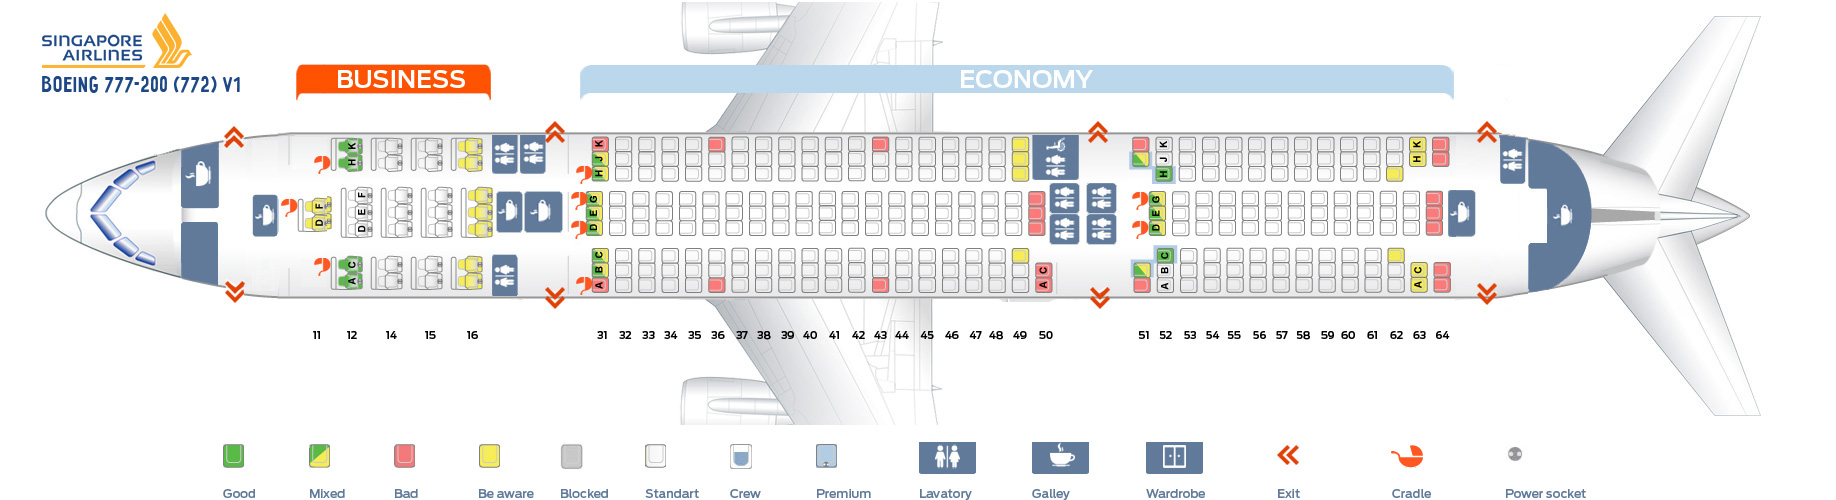 1000 Images About Air France On Pinterest Auto Electrical Wiring Motrec Diagram Photo Boeing 777 200 Seating Chart 100